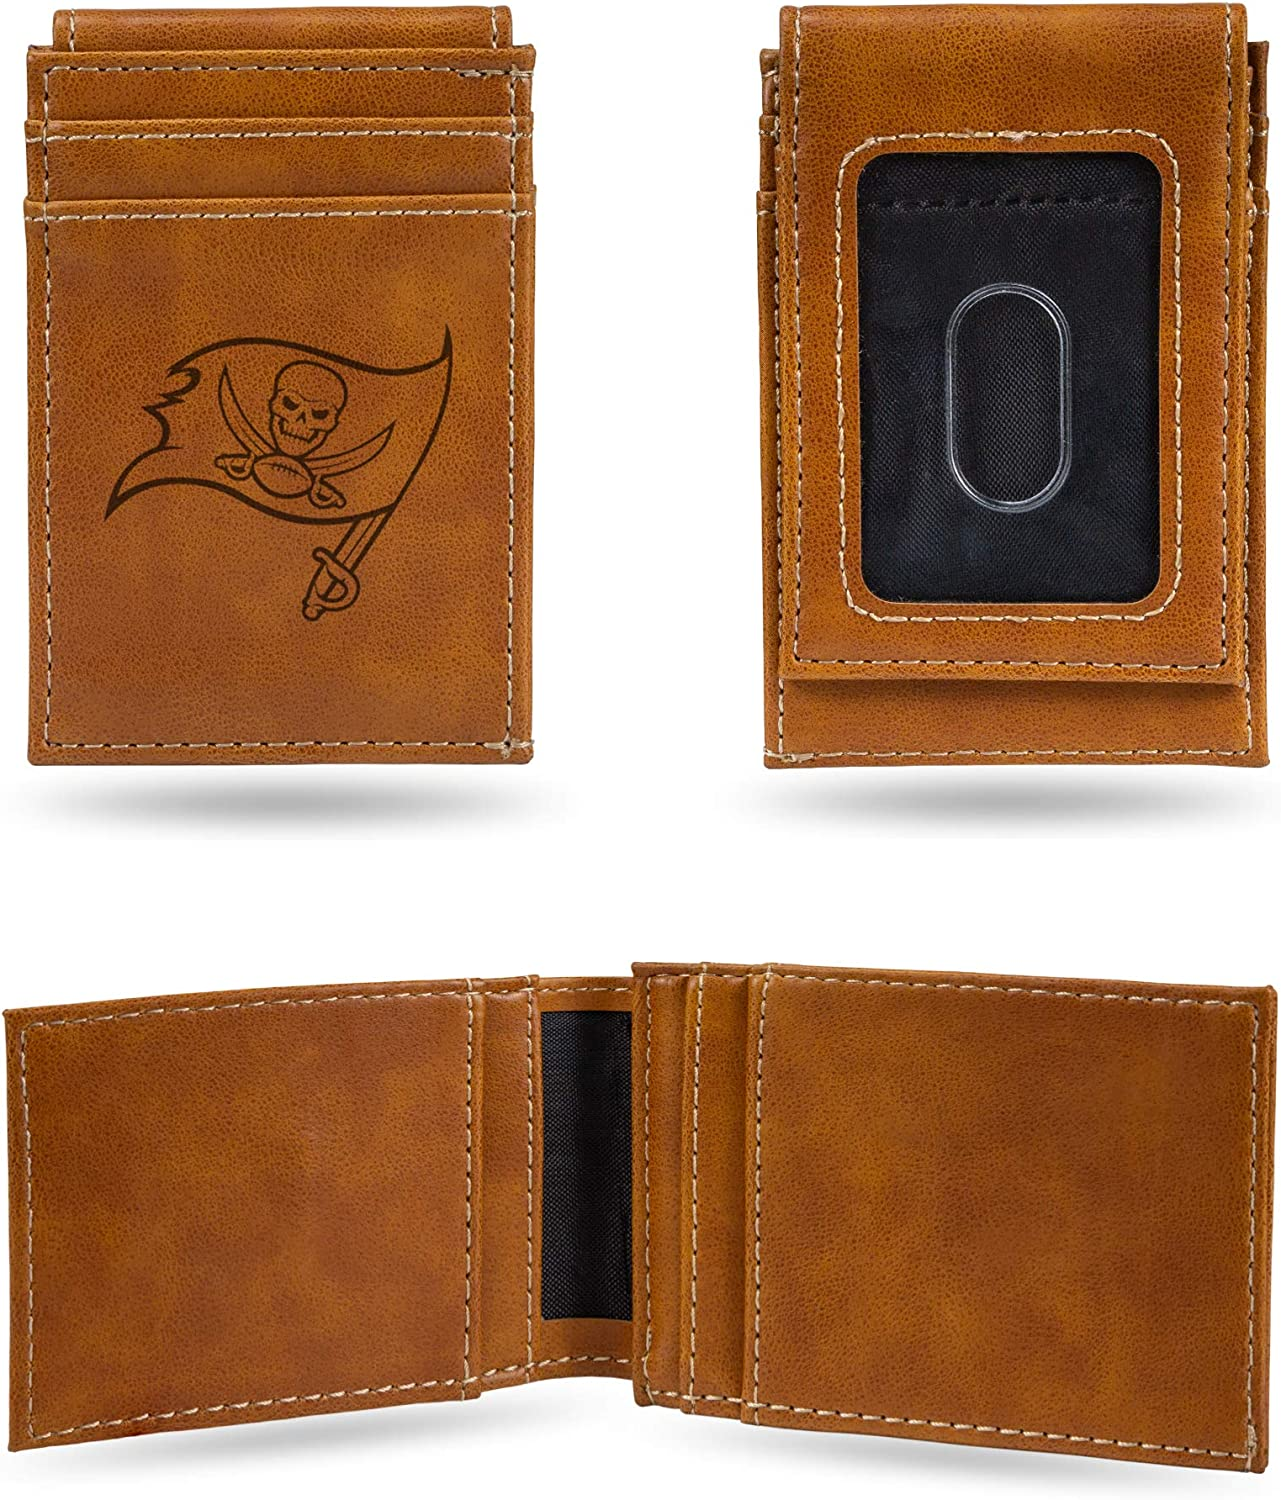 NFL Rico Industries Laser Engraved Fees free Ba Tampa Sales of SALE items from new works Wallet Pocket Front